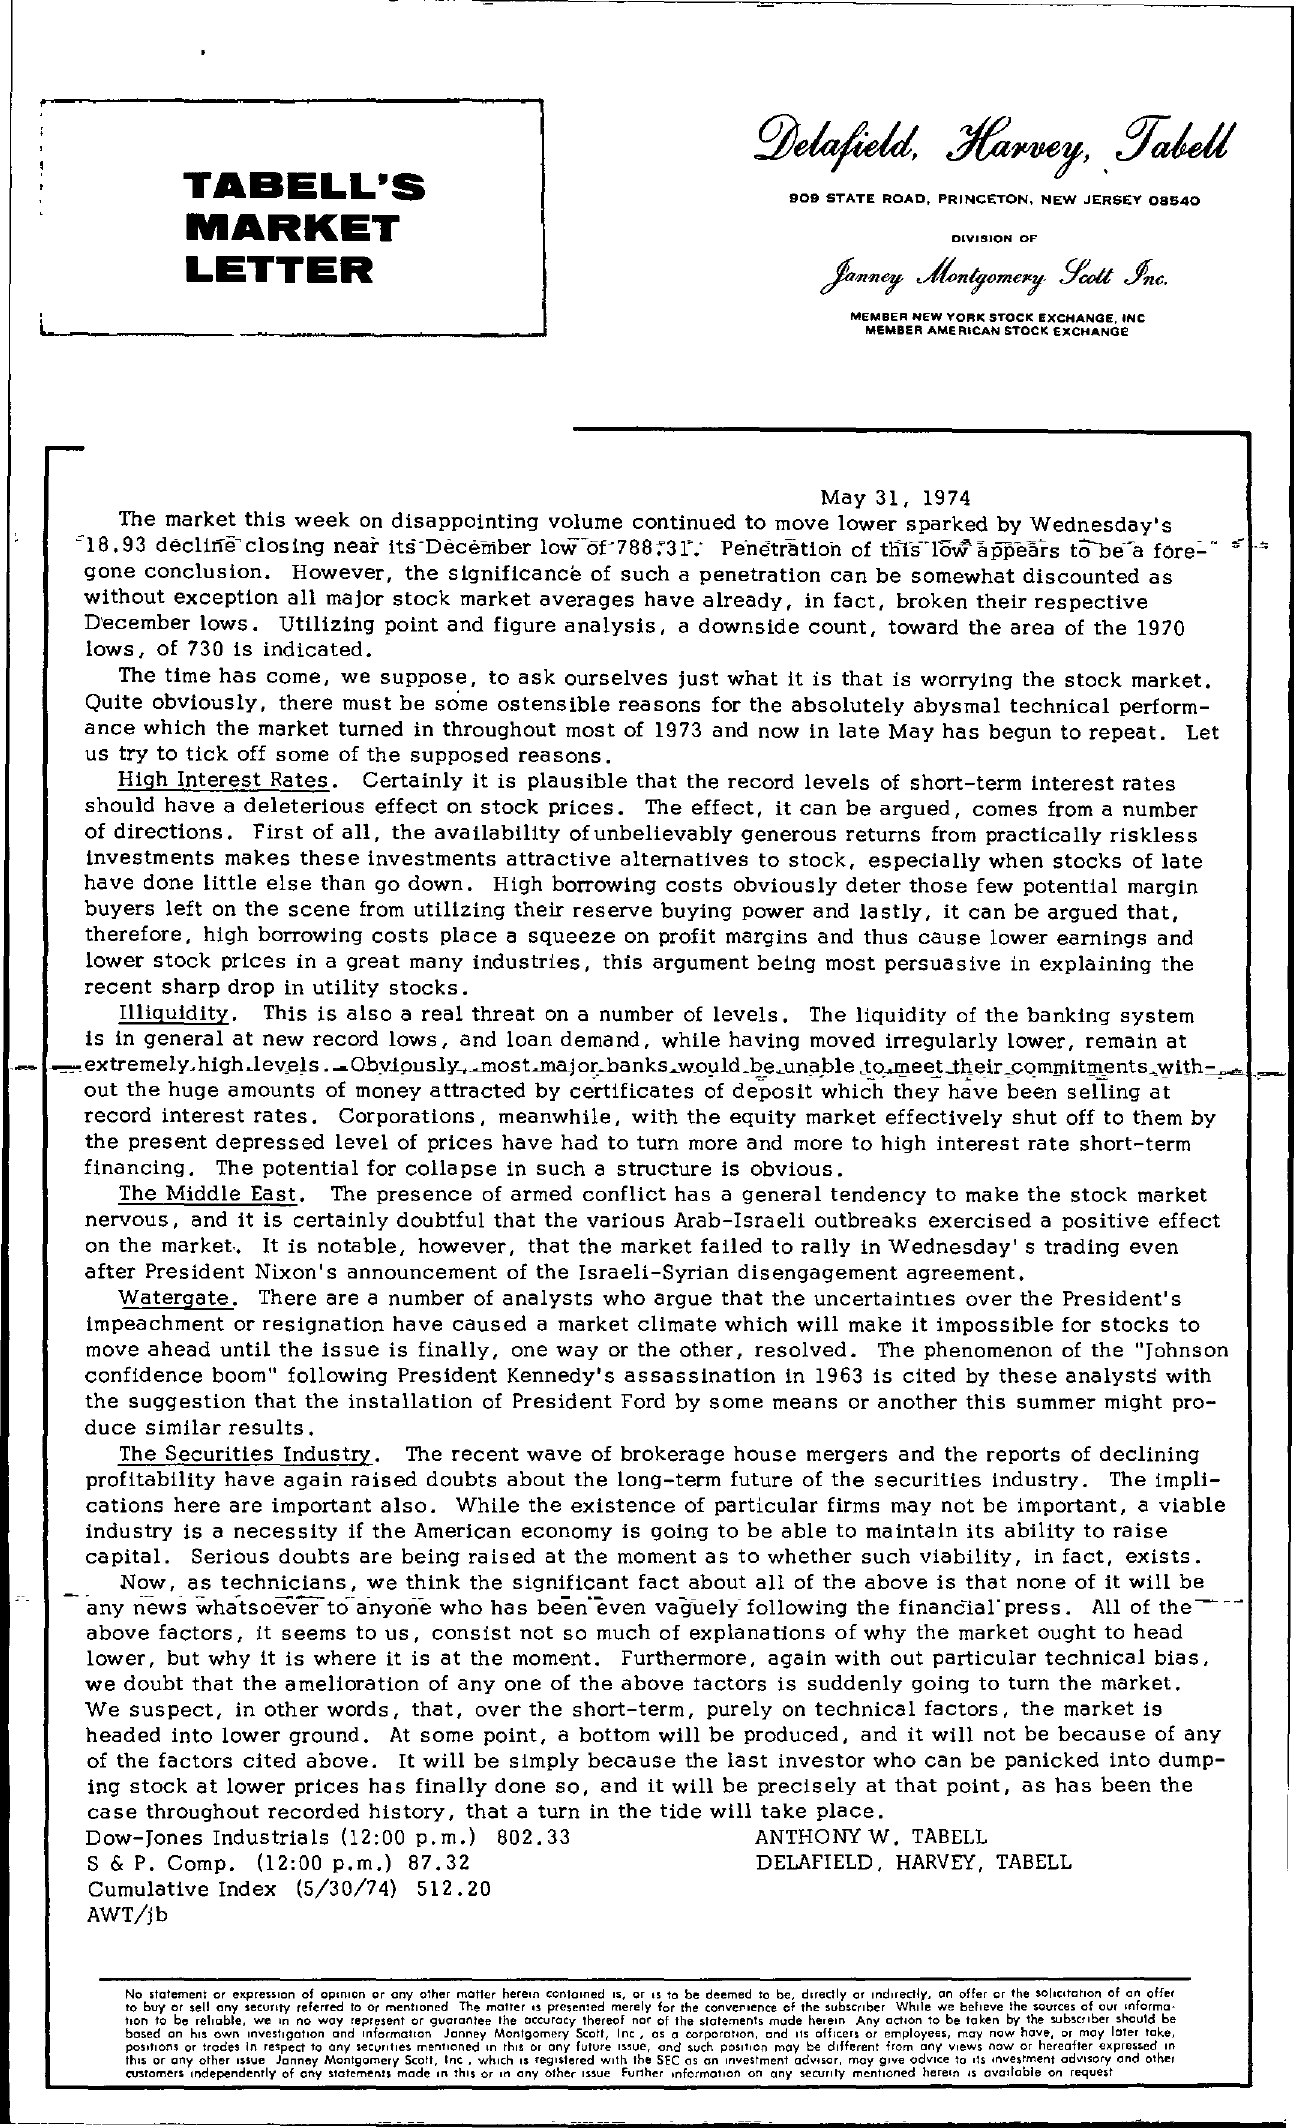 Tabell's Market Letter - May 31, 1974